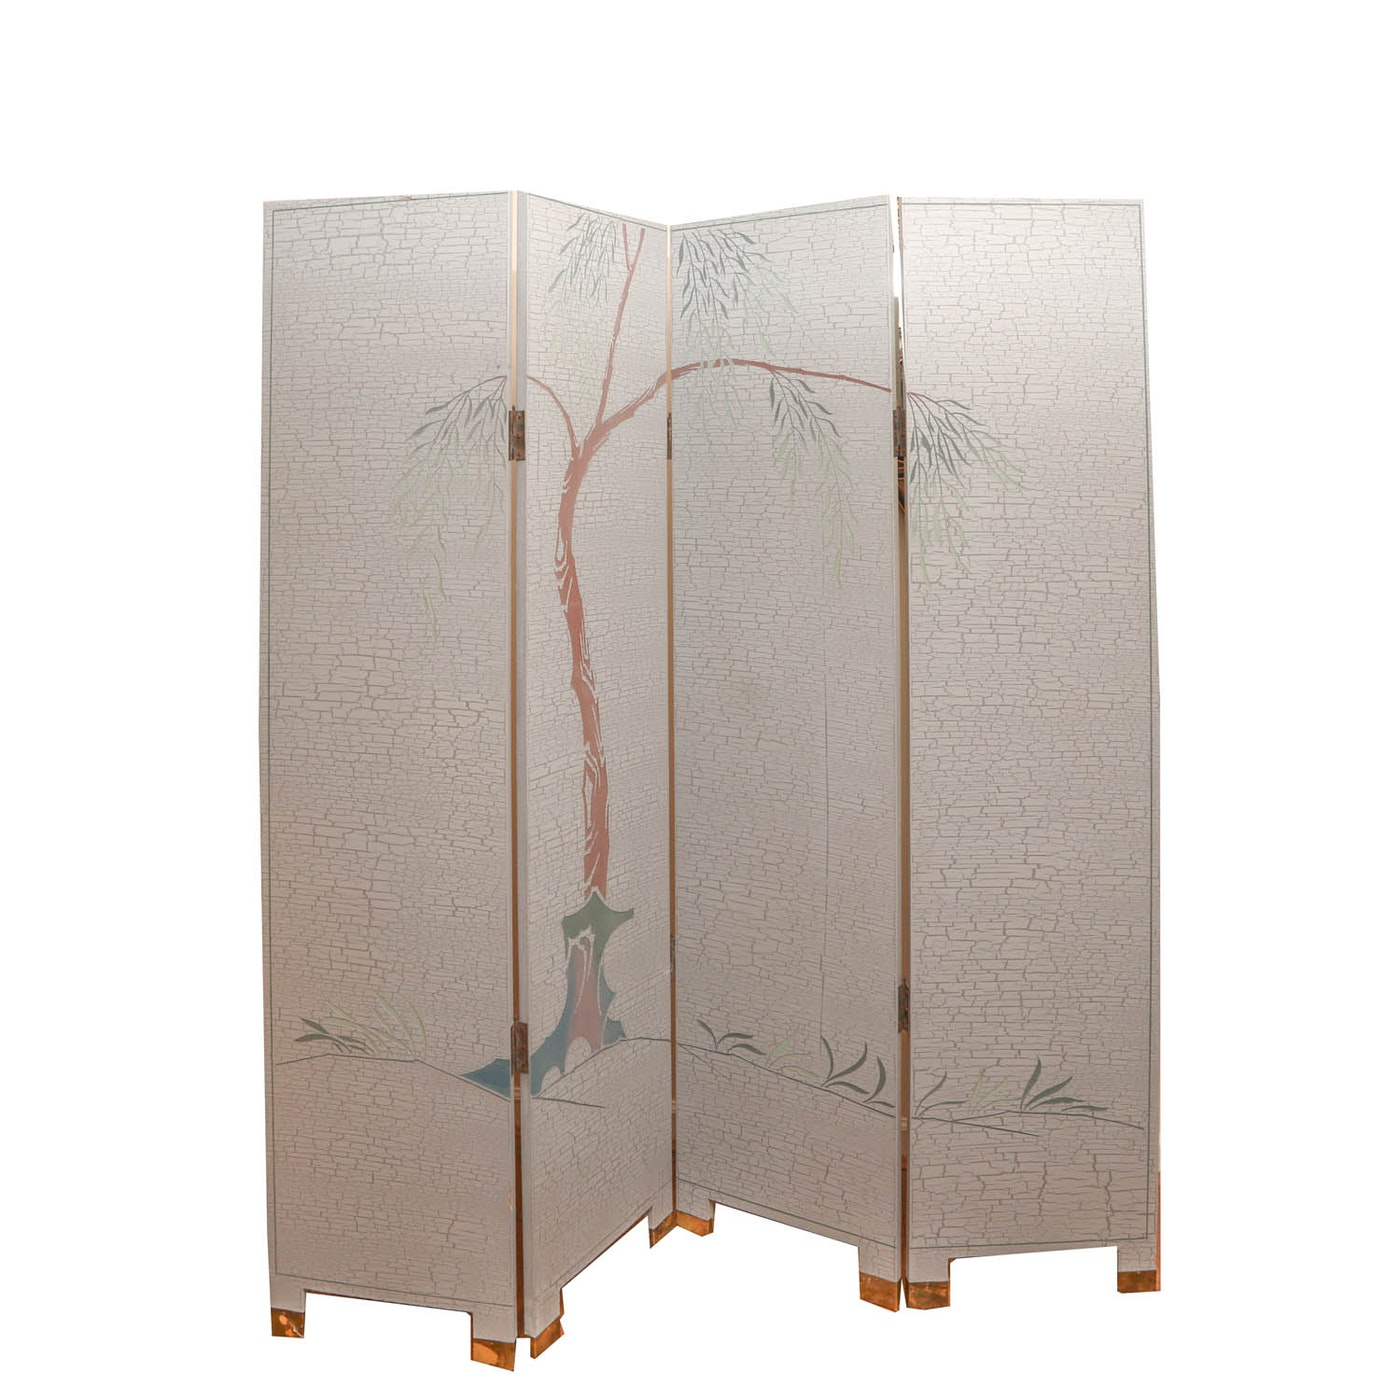 Oriental Room Dividers For Sale